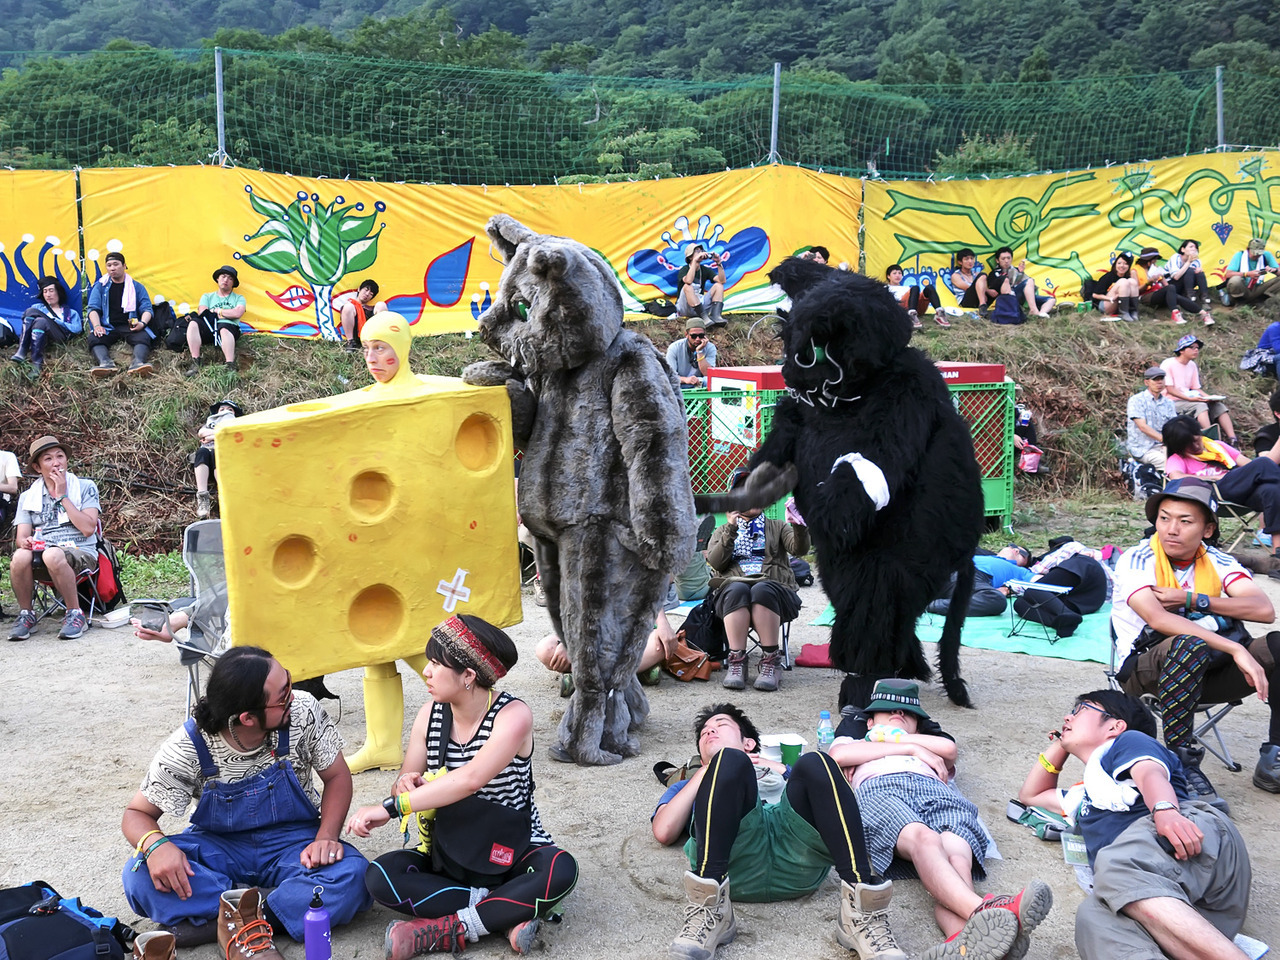 Human cheese & giant mice (or rats?) at FujiRock today.